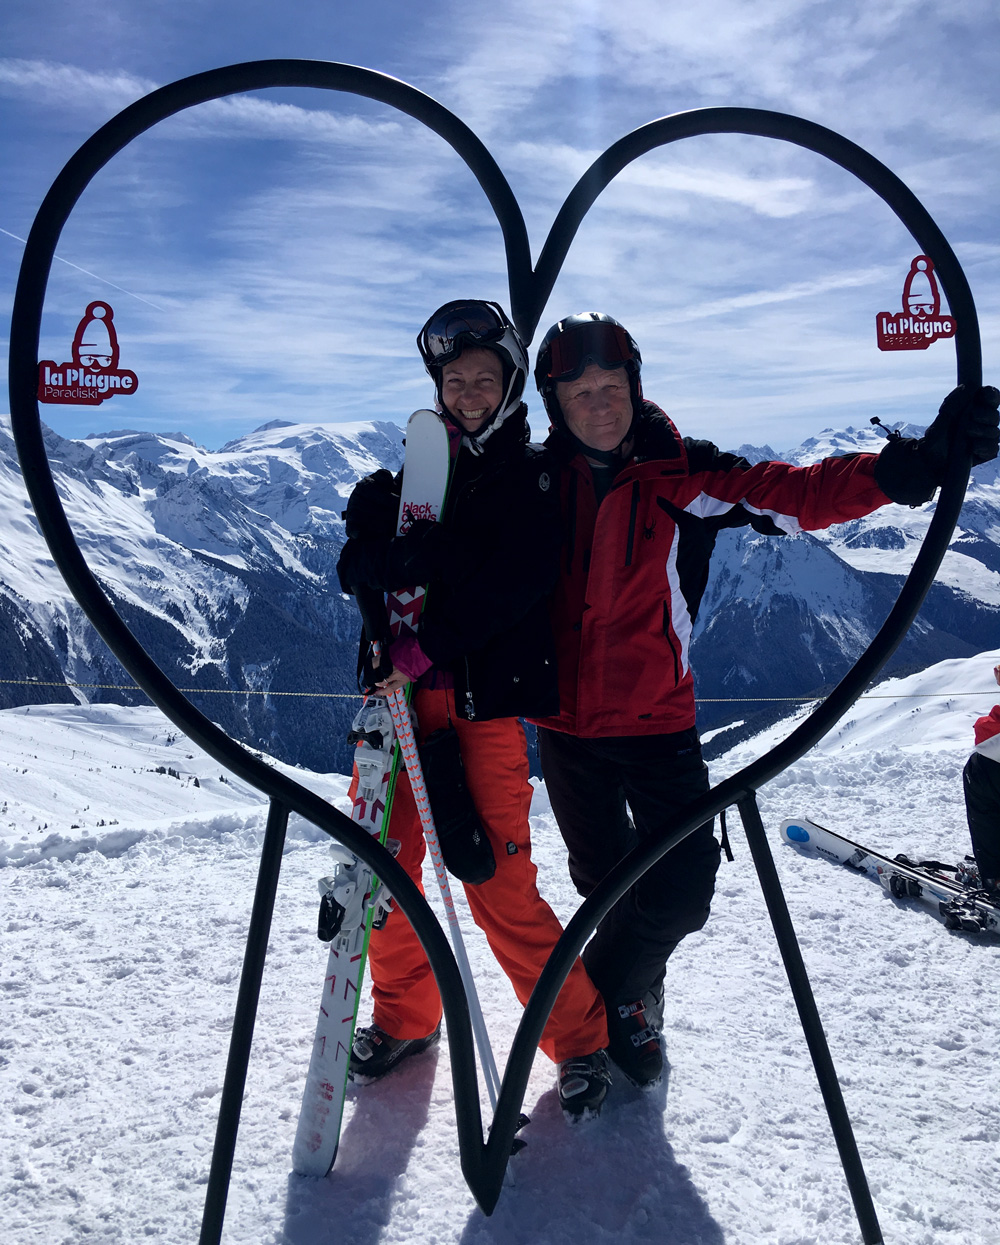 Friends in La Plagne